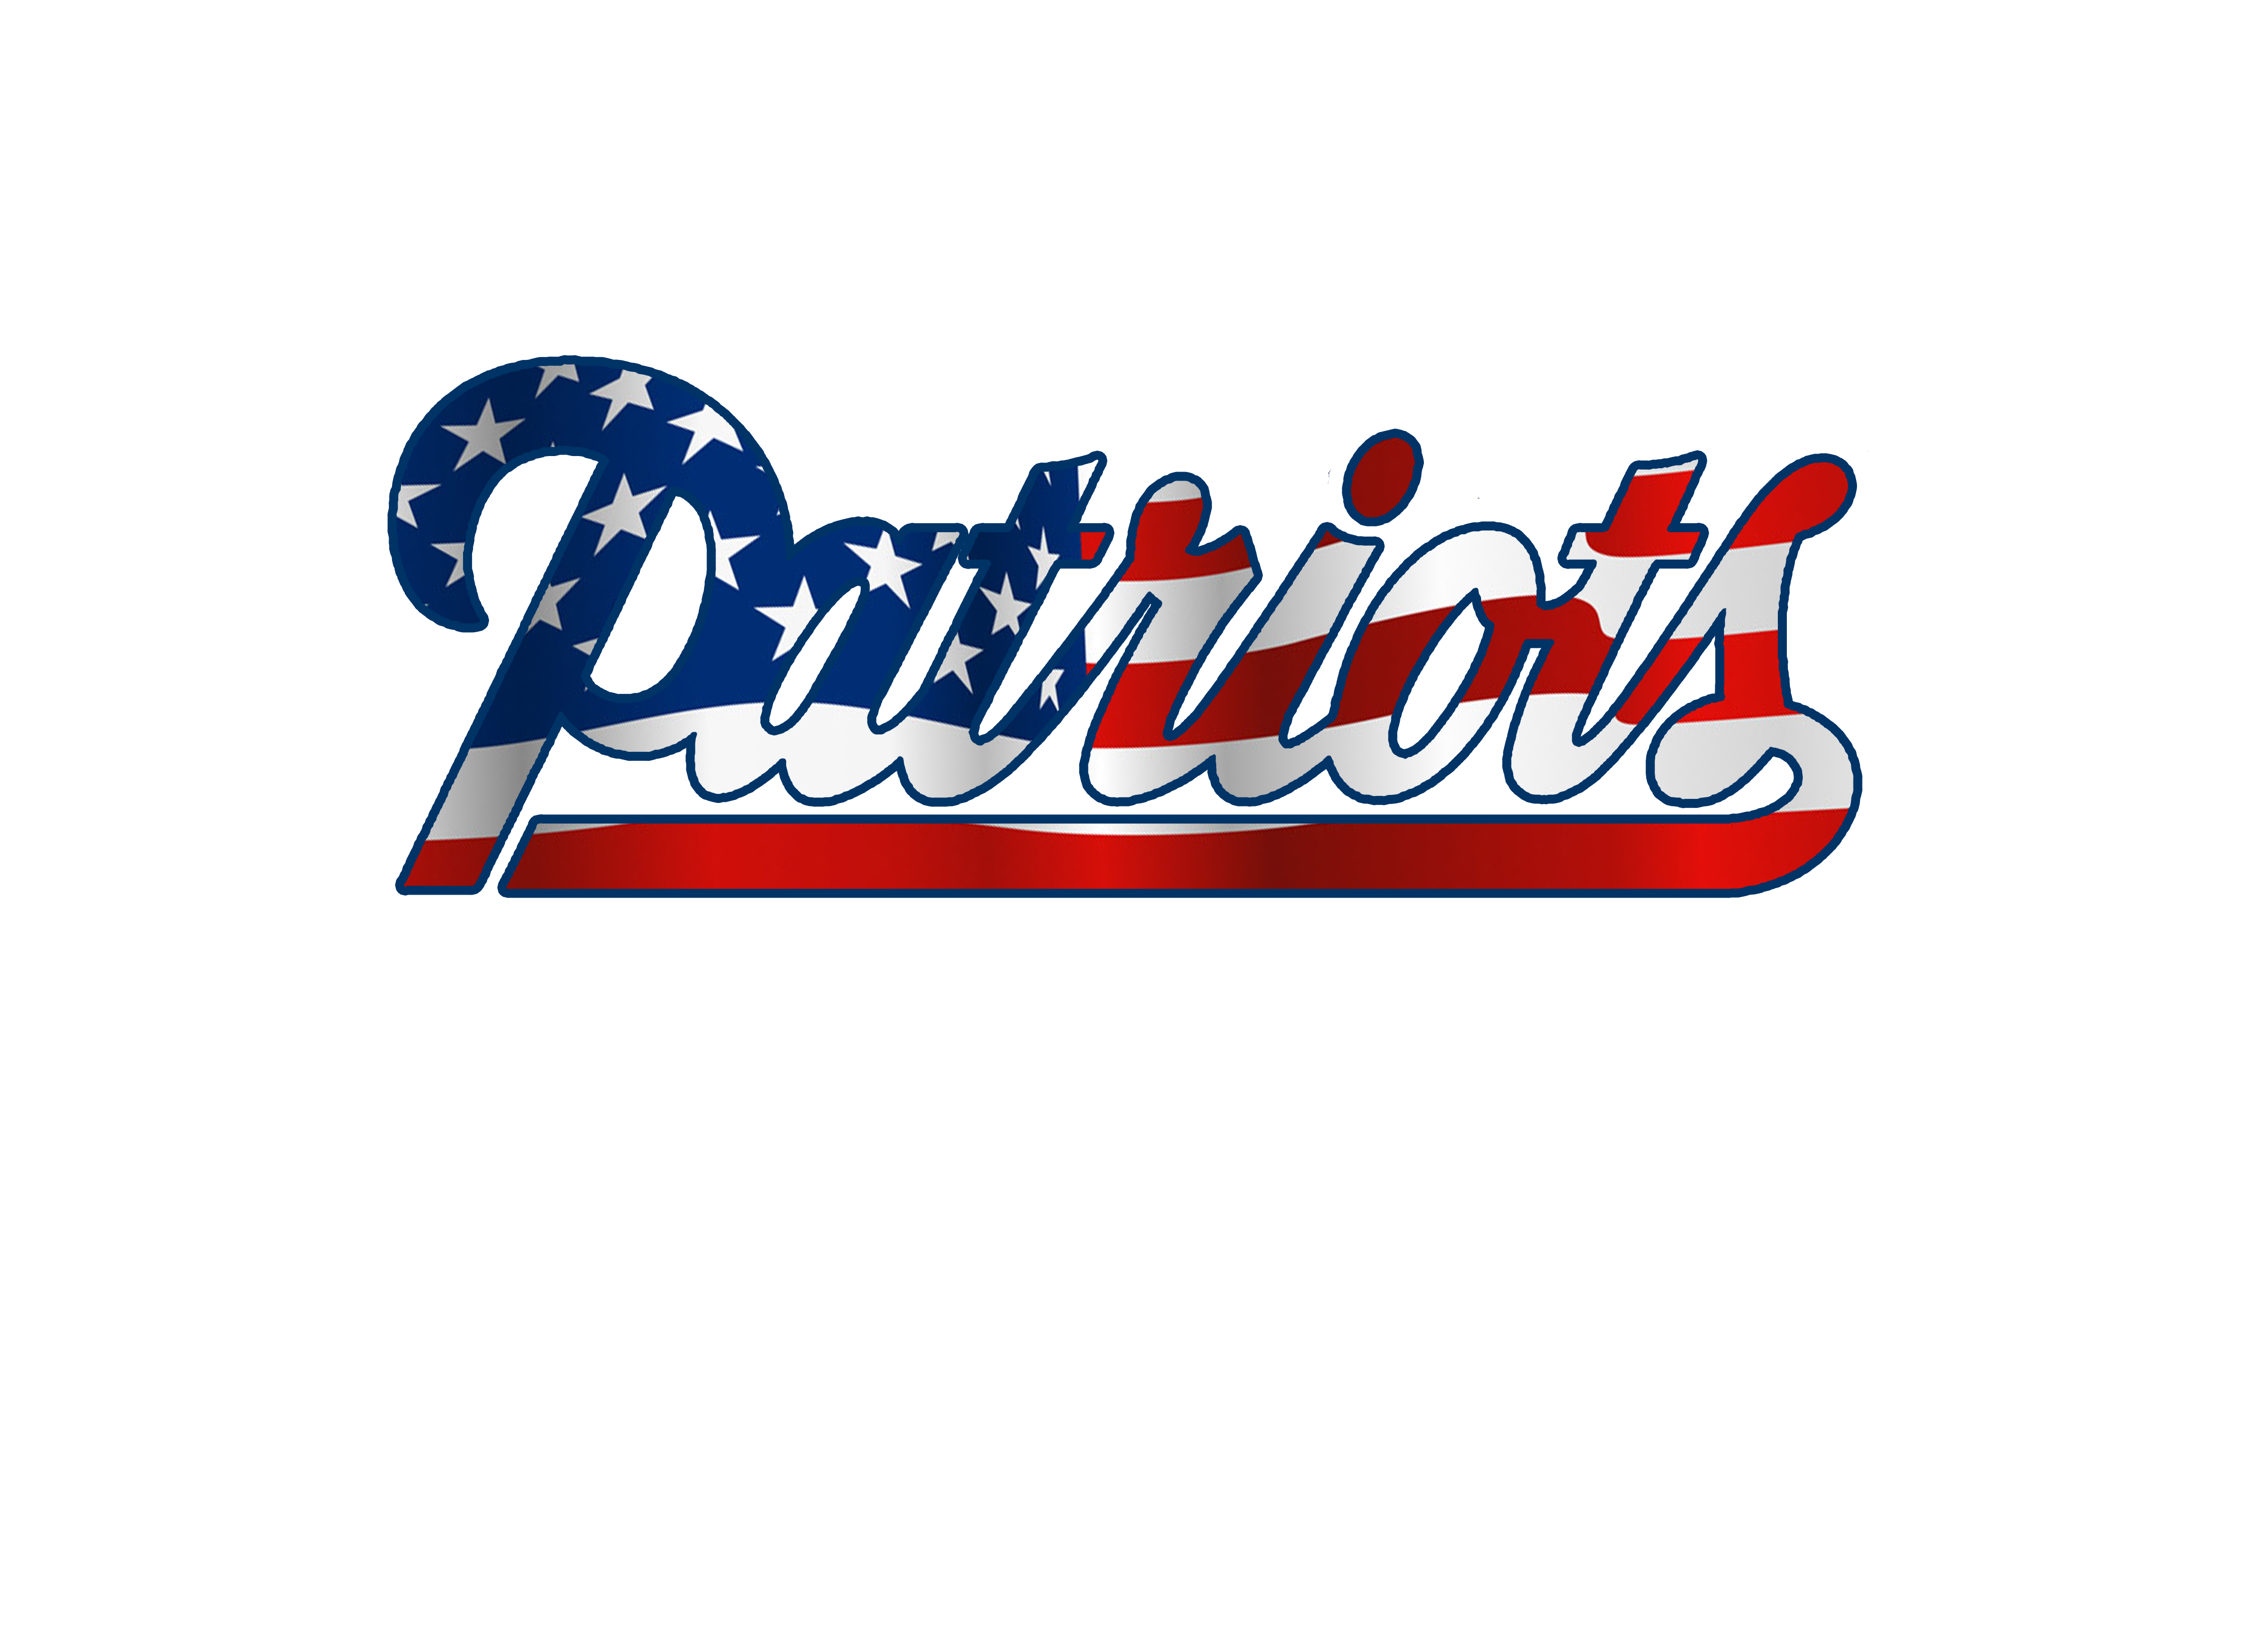 Patriots free wallpapers amp background images hippowallpapers com